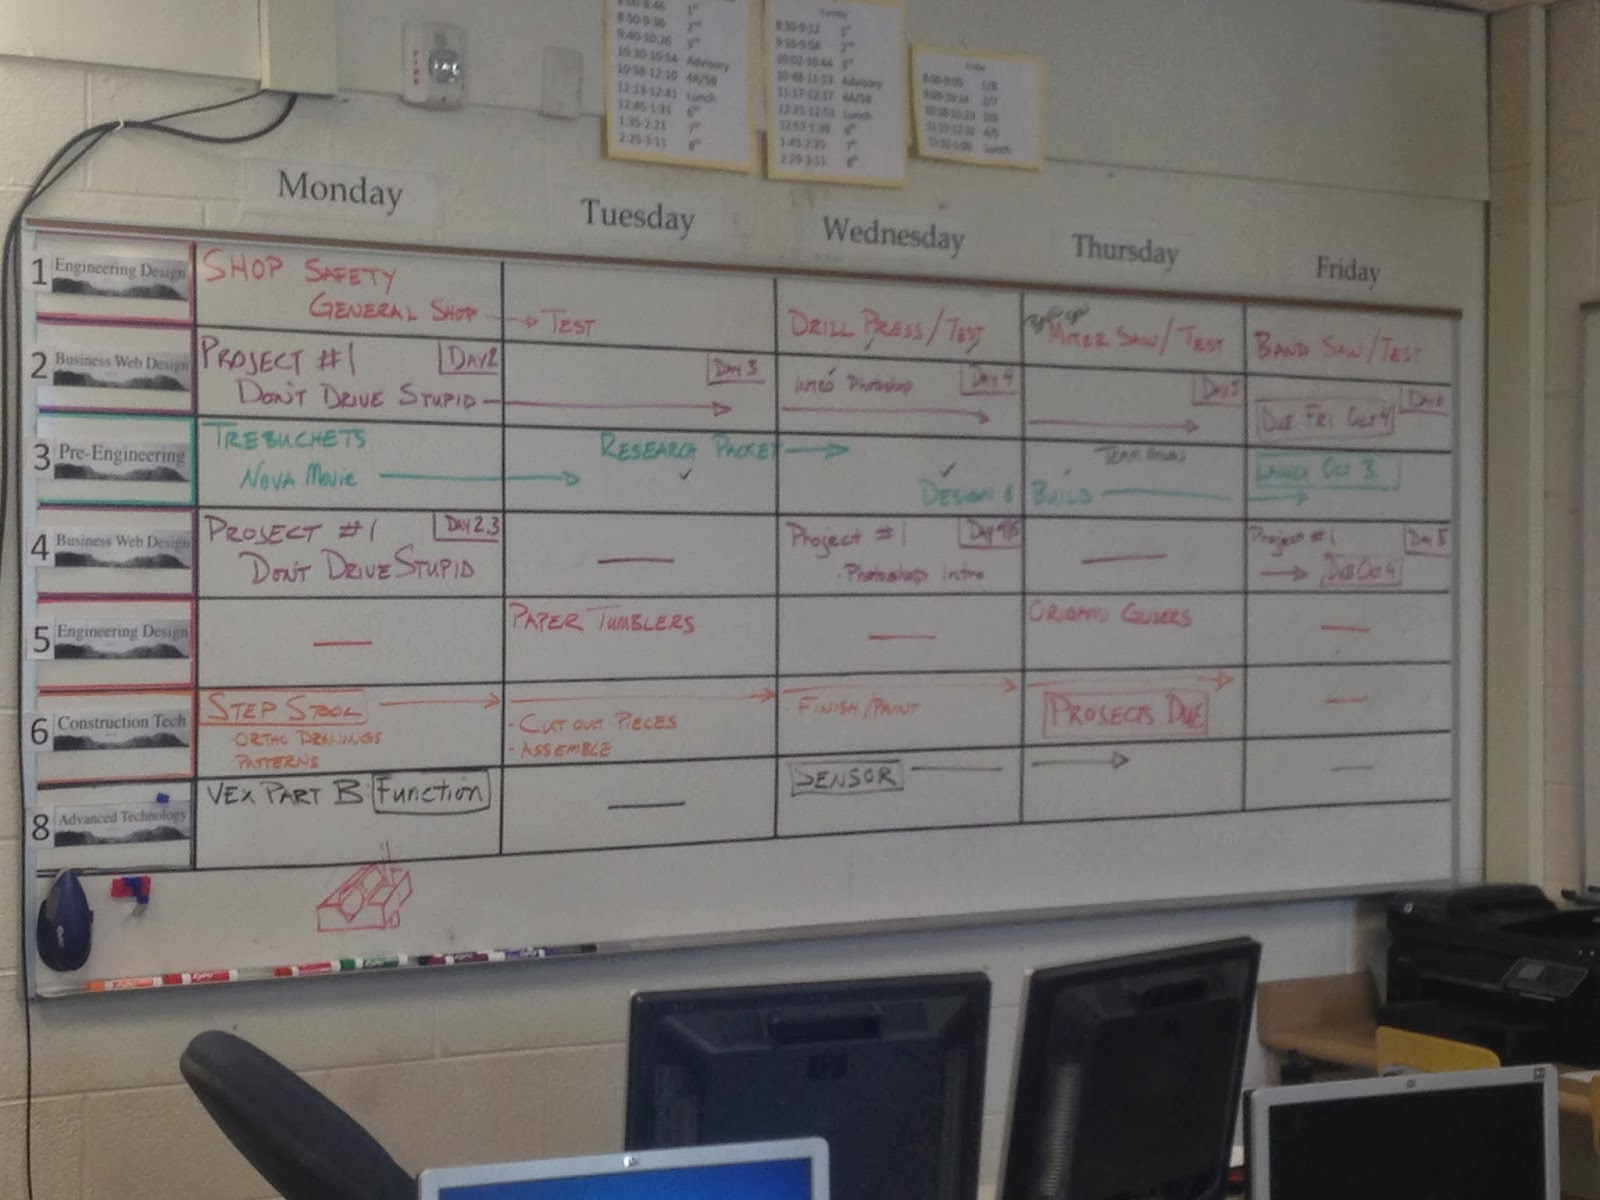 Bronco Technology   Engineering  Whiteboard Schedule September 23 27 Whiteboard Schedule September 23 27